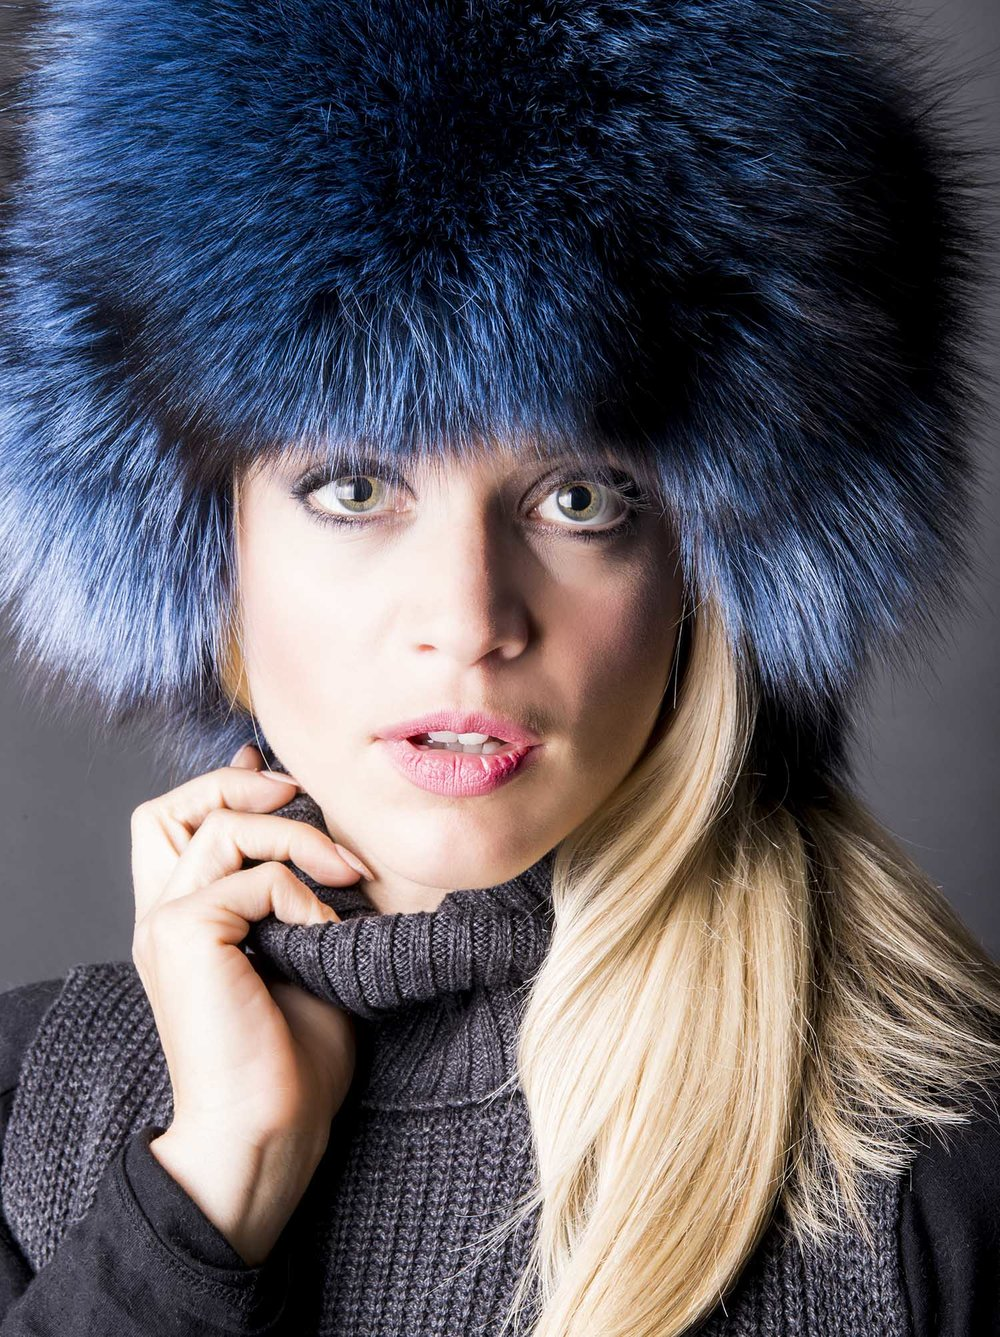 pat-flesher-furs-hat-blue-fluffy-women.jpg